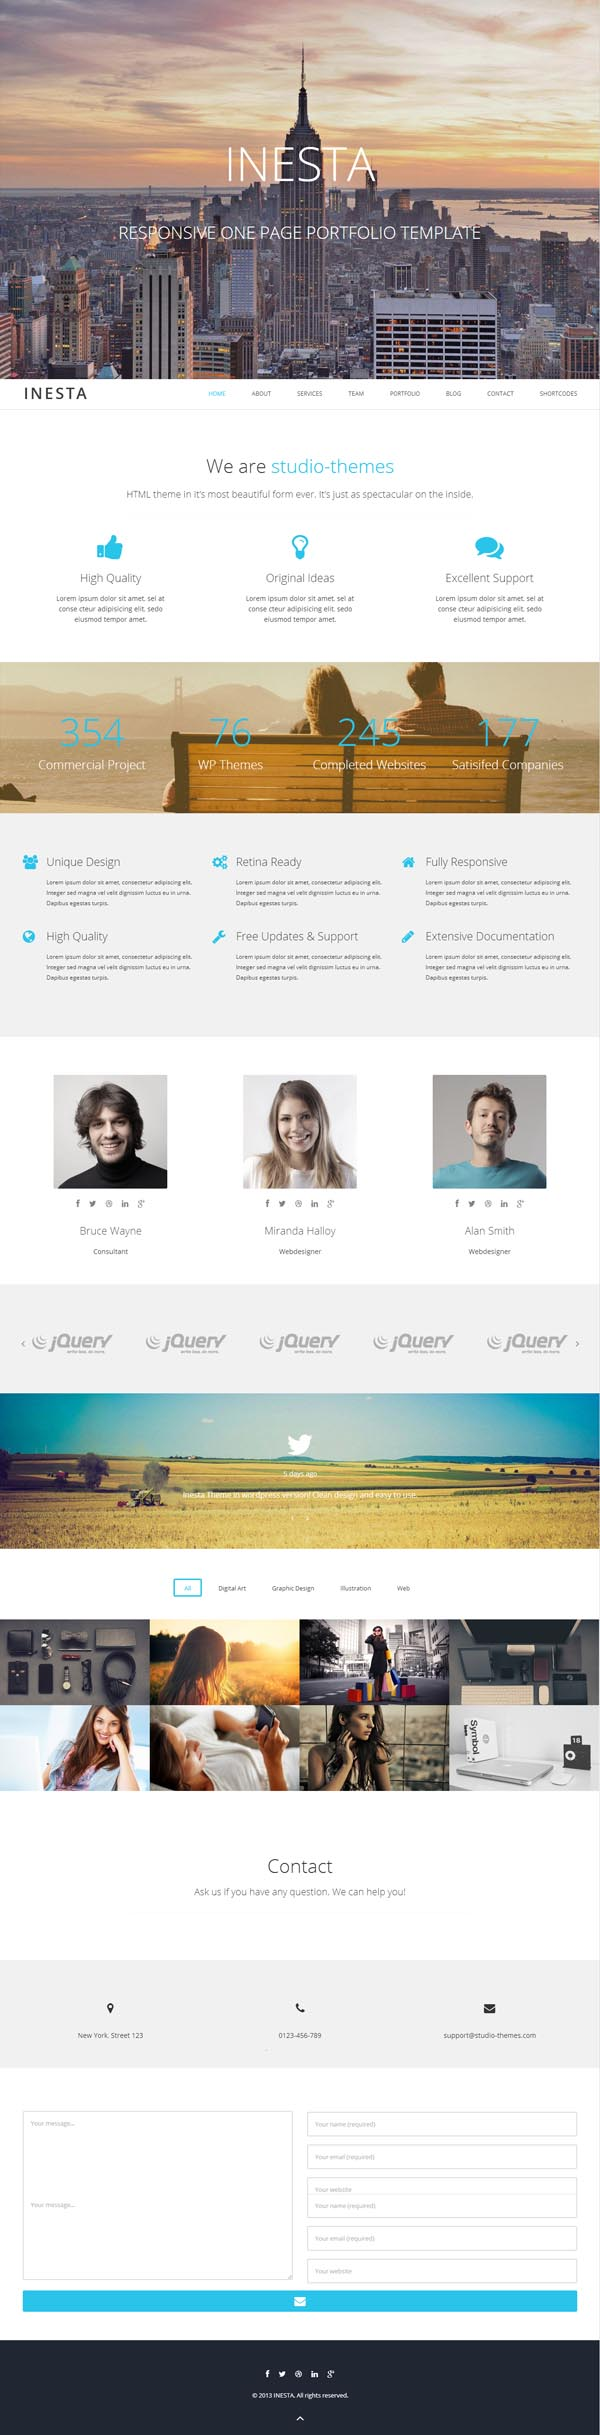 Inesta - Responsive One Page WordPress Theme